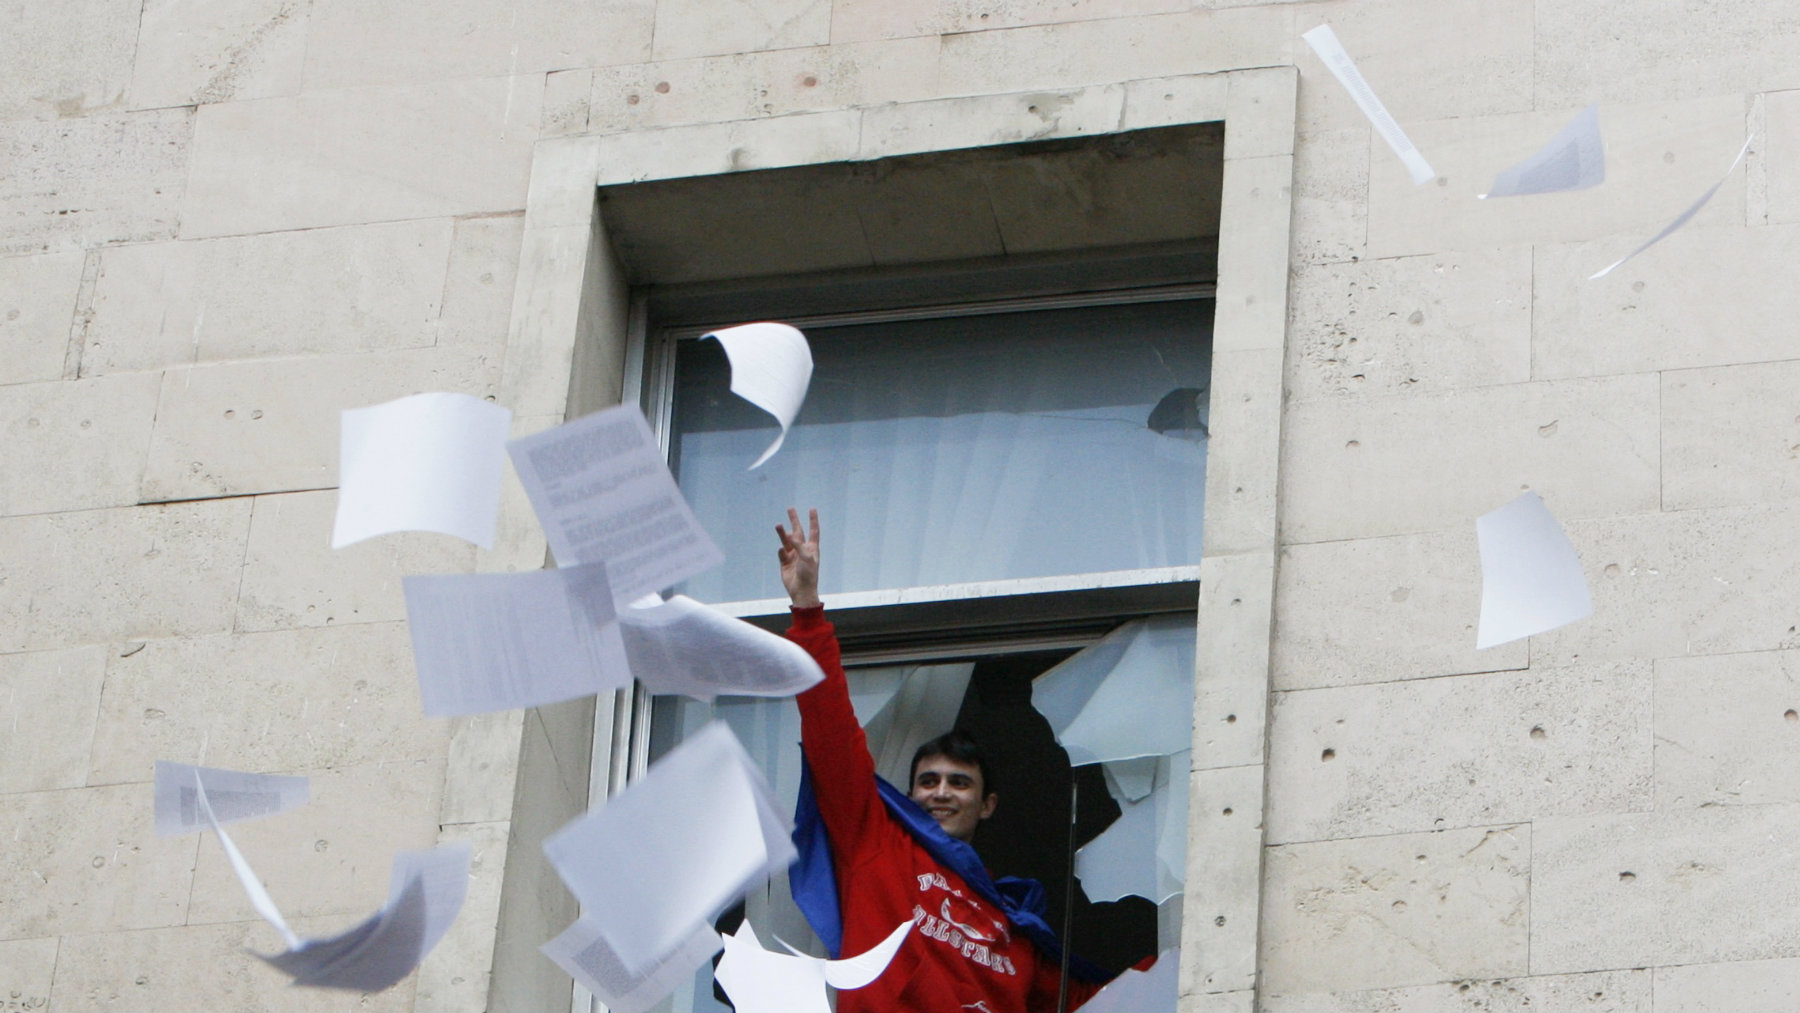 A man throws documents out of a window of the parliament building in Chisinau April 7, 2009. Protesters denouncing a Communist election victory in Moldova siezed the president's offices on Tuesday and broke into parliament where they hurled furniture and computers into the street, Reuters reporters said. REUTERS/Gleb Garanich